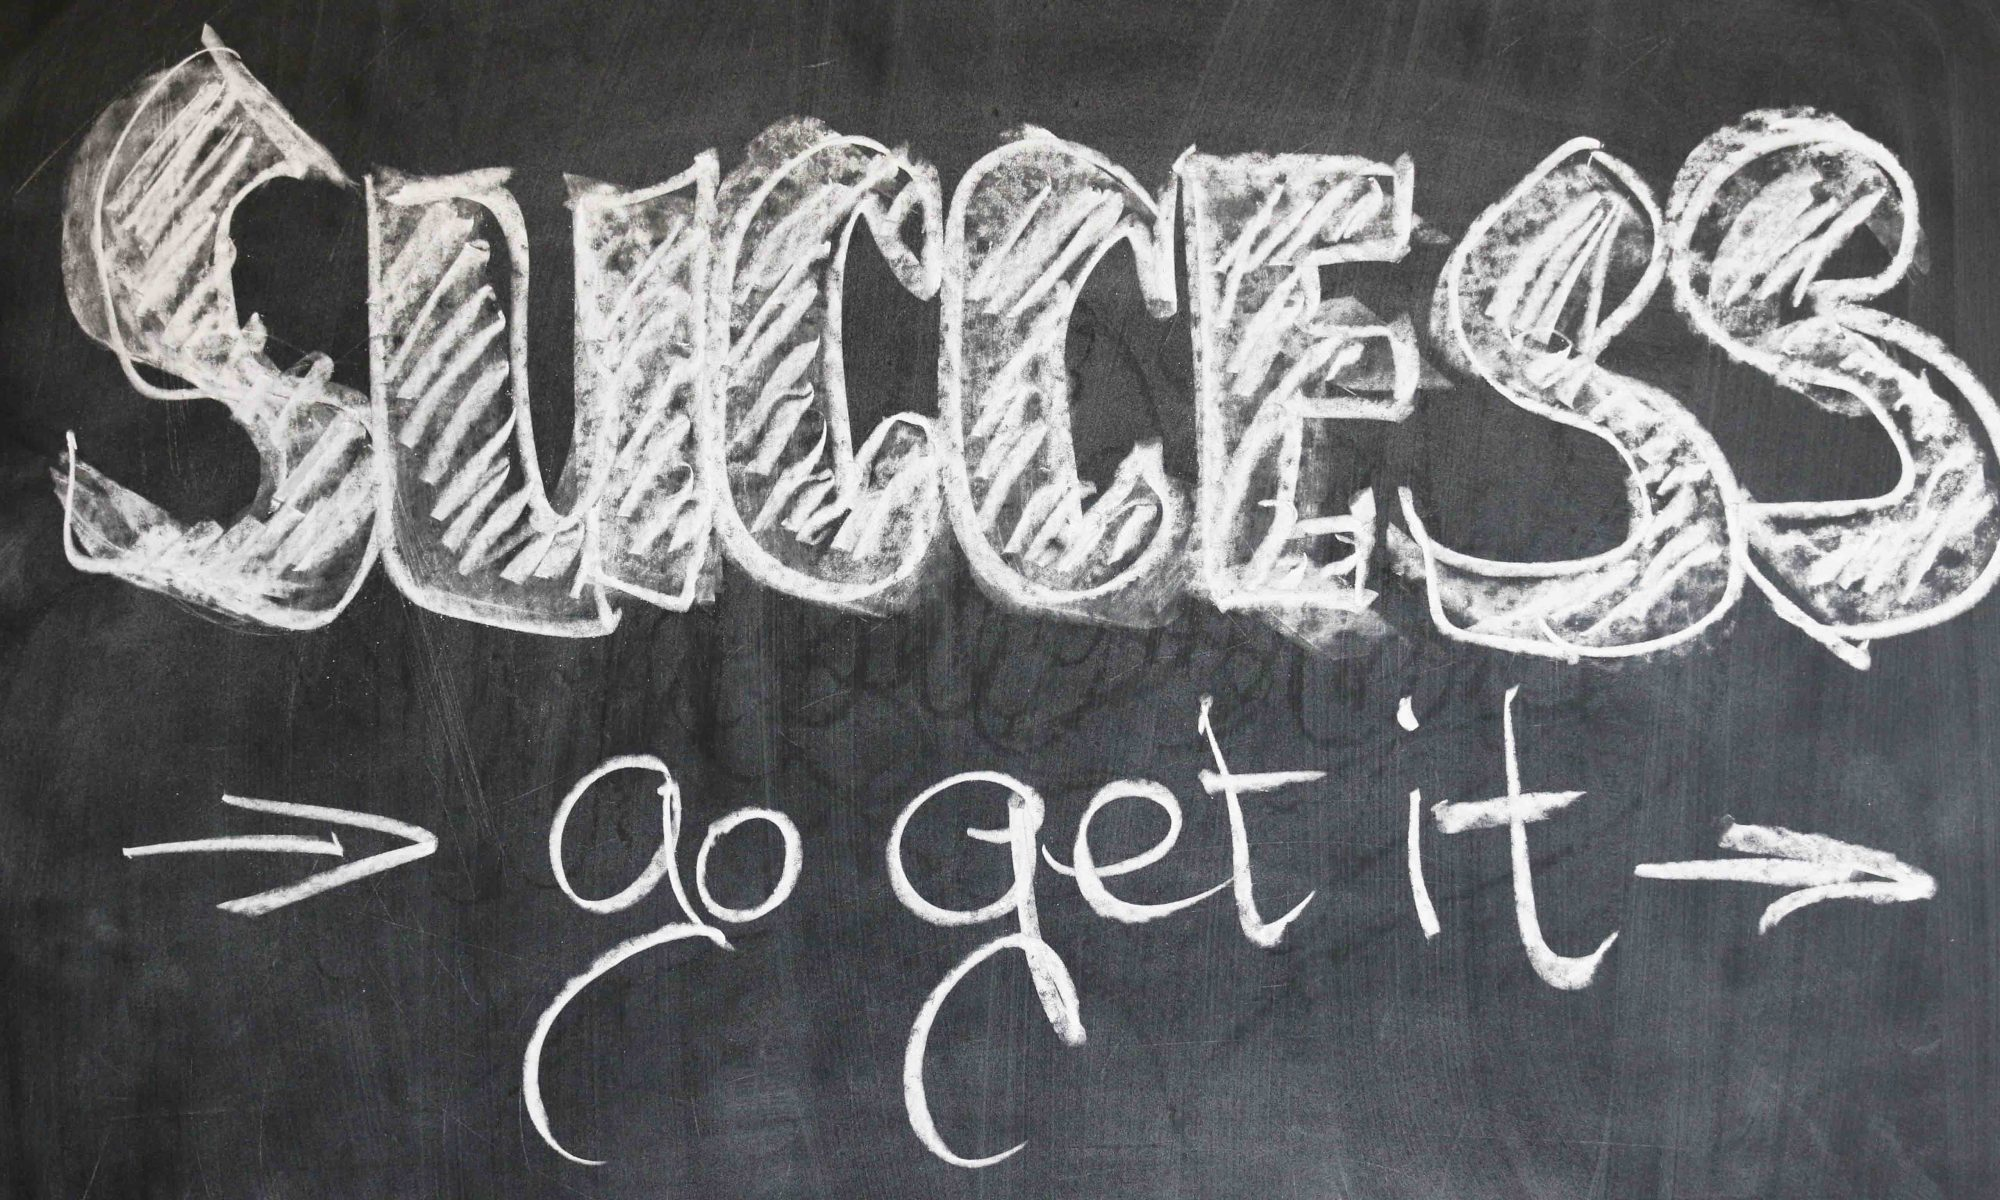 Success: go get it! Written in chalk on a blackboard